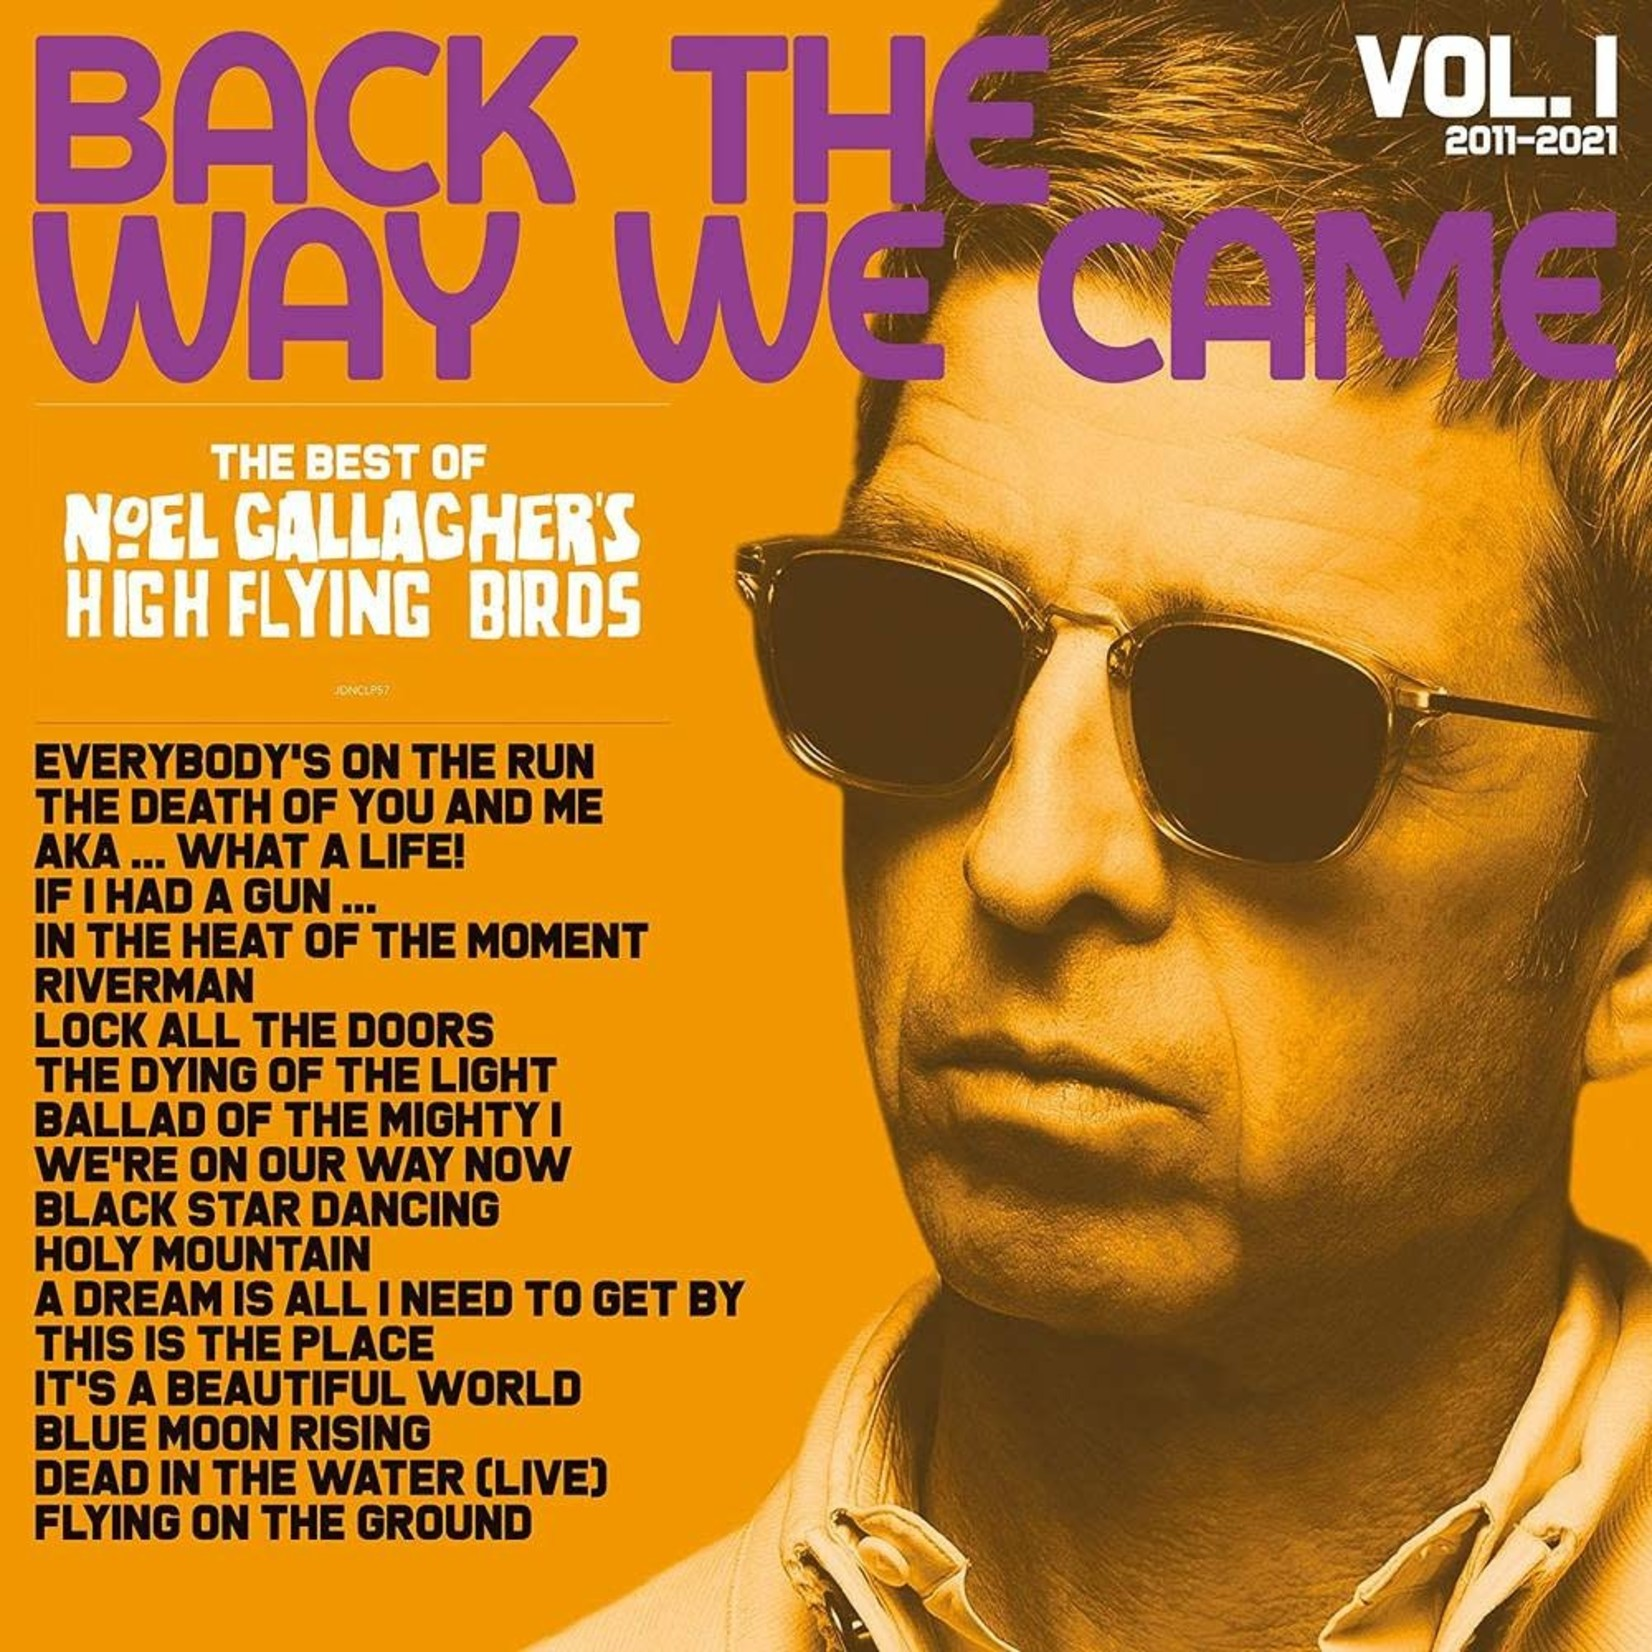 NOEL GALLAGHER'S HIGH FLYING BIRDS BACK THE WAY WE CAME: VOL. 1 (2011 - 2021)